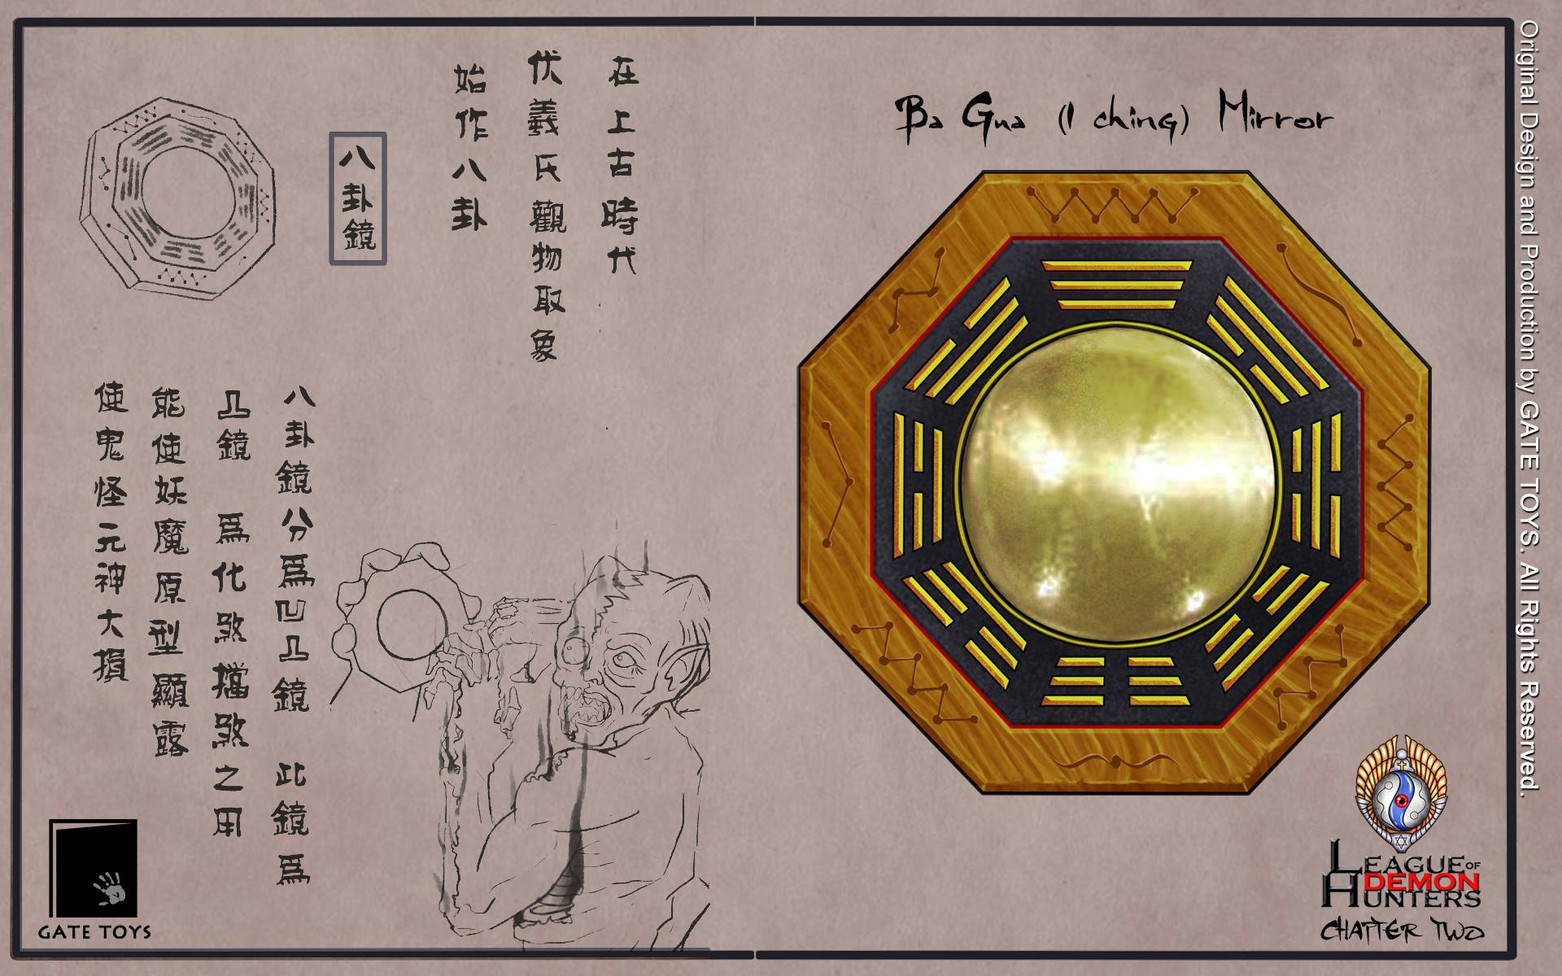 The Ba Gua (I Ching) Mirror can reveal demon's true forms and dispel them.